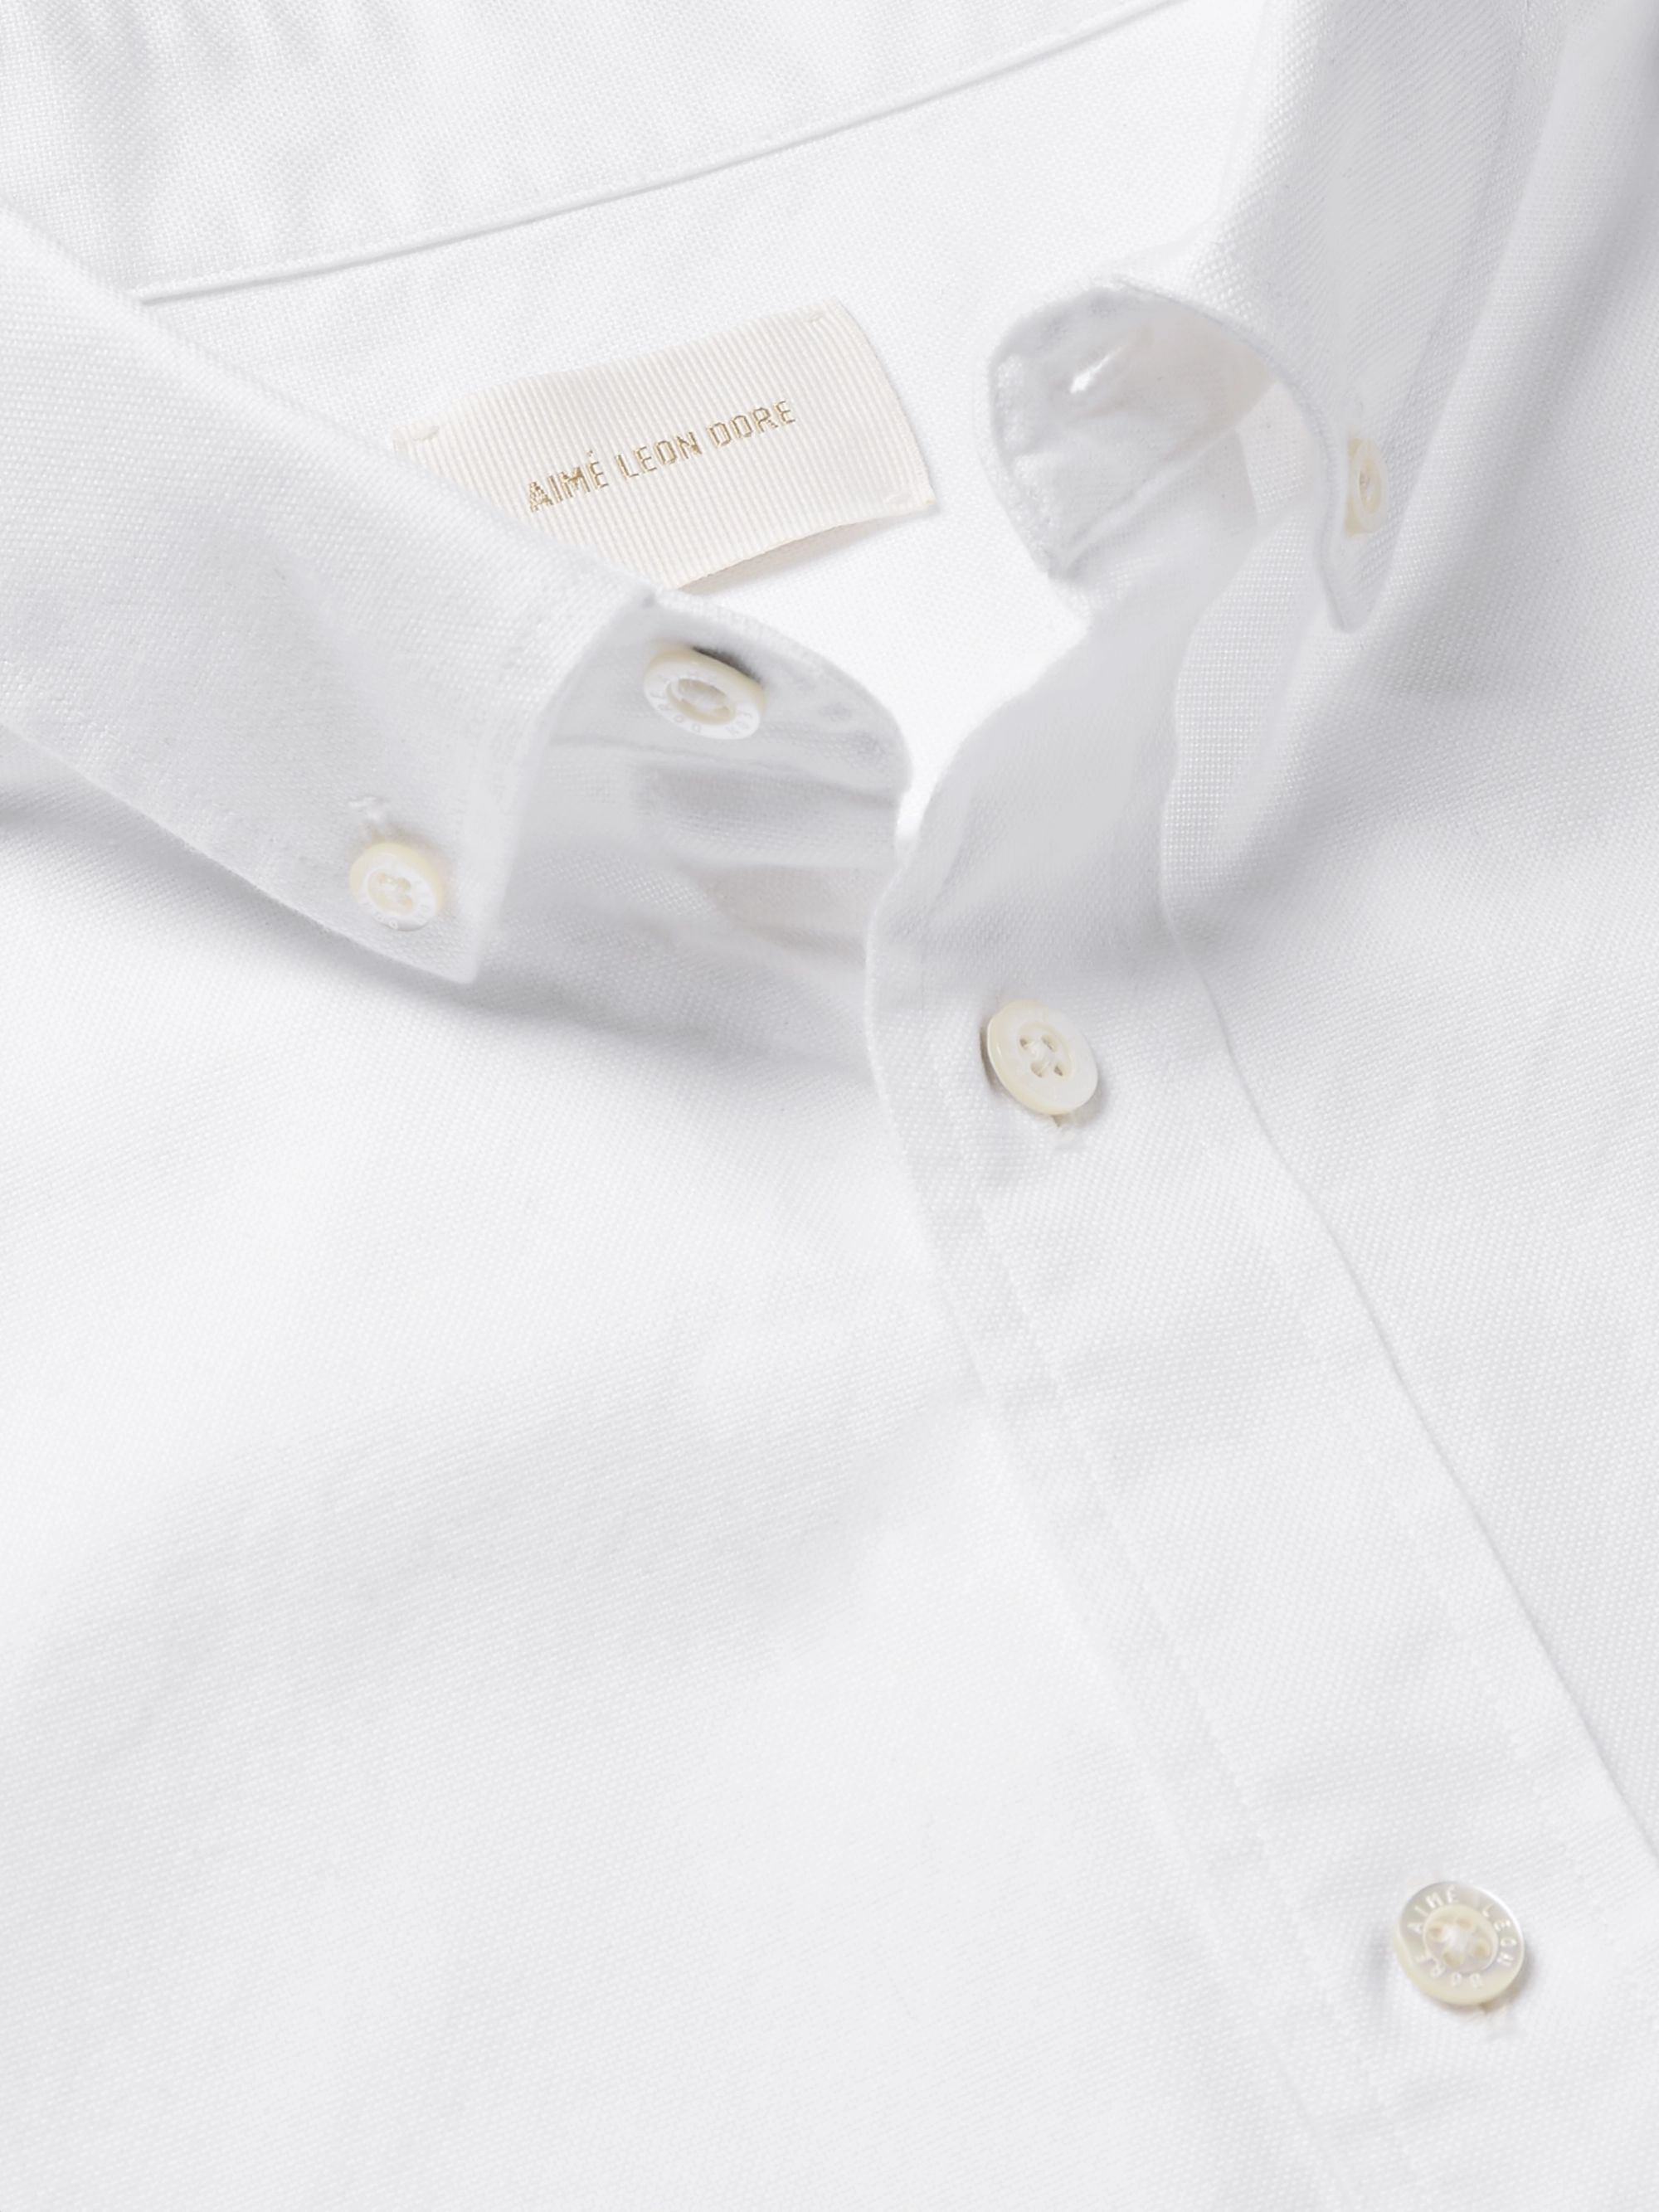 Aimé Leon Dore Button-Down Collar Logo-Appliquéd Cotton Oxford Shirt